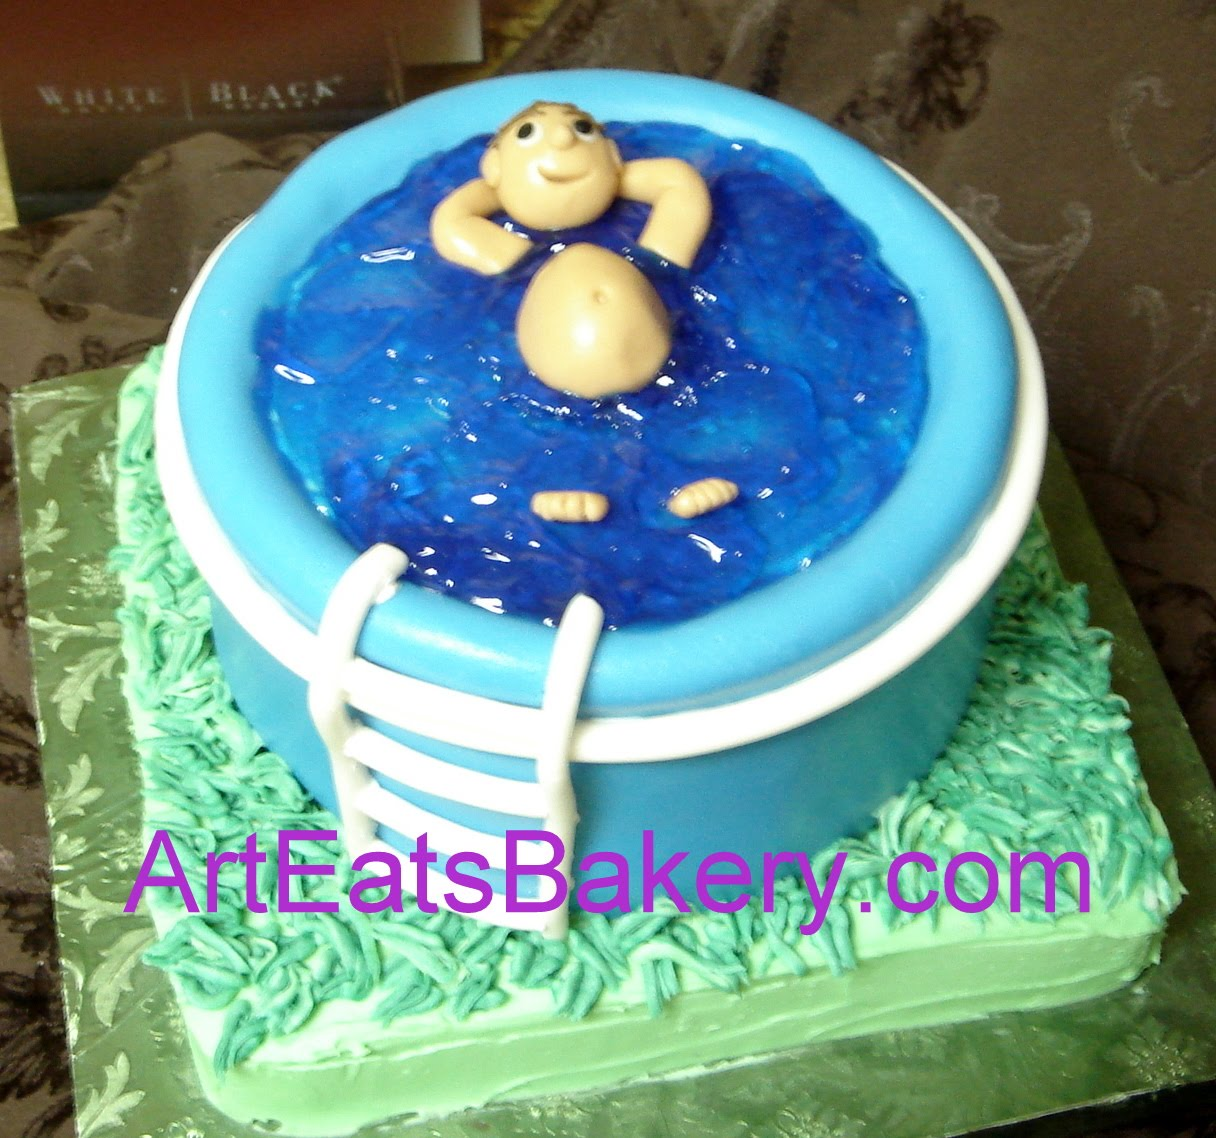 Fun birthday or groom s cakes for men arteatsbakery for Swimming pool birthday cake pictures